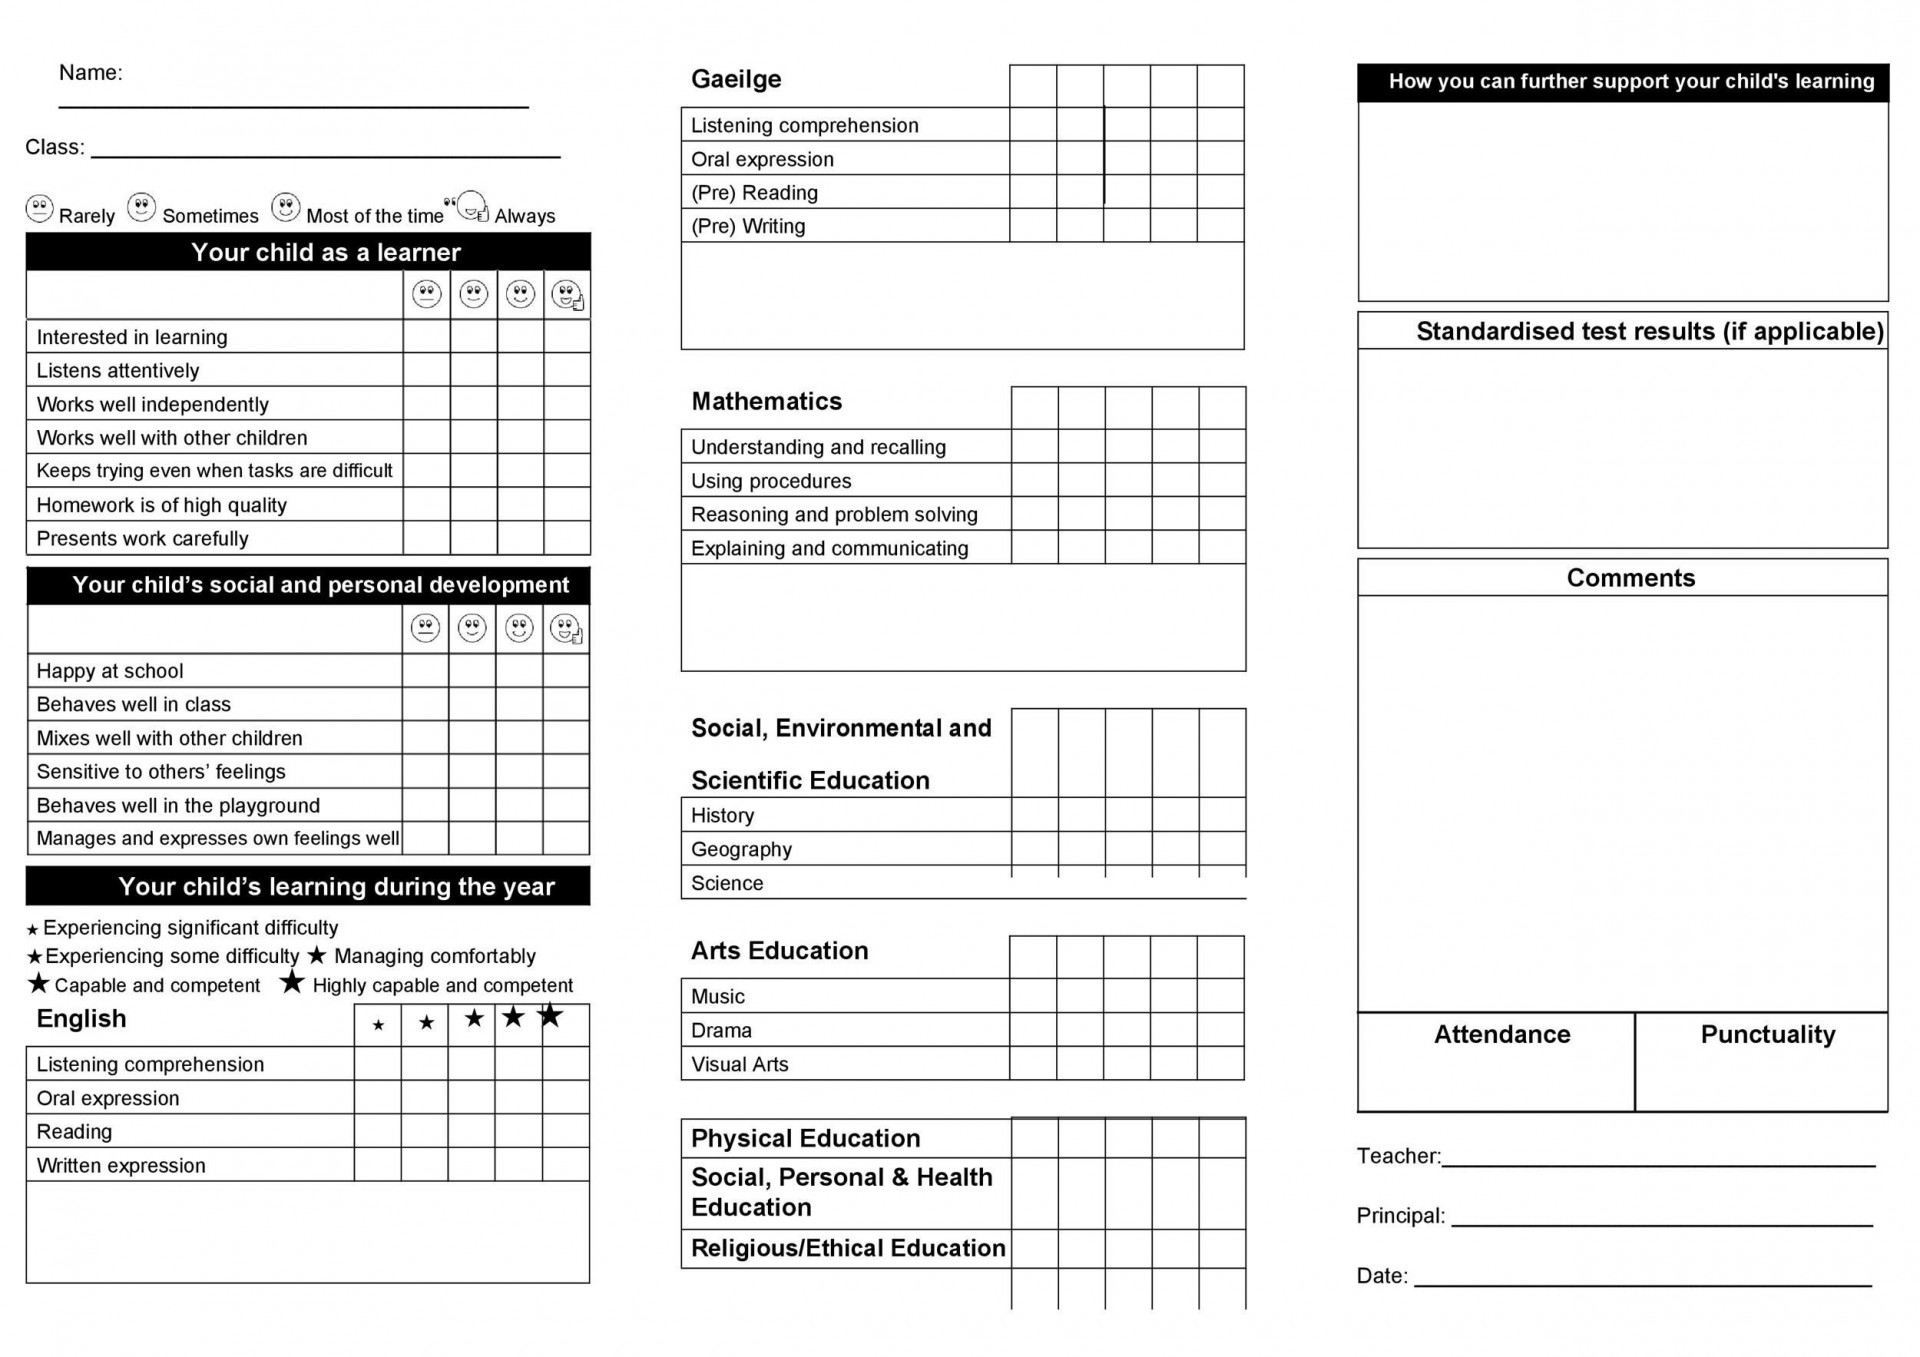 008 Beautiful Middle School Report Card Template Picture  Pdf Homeschool Free Standard Based Sample1920